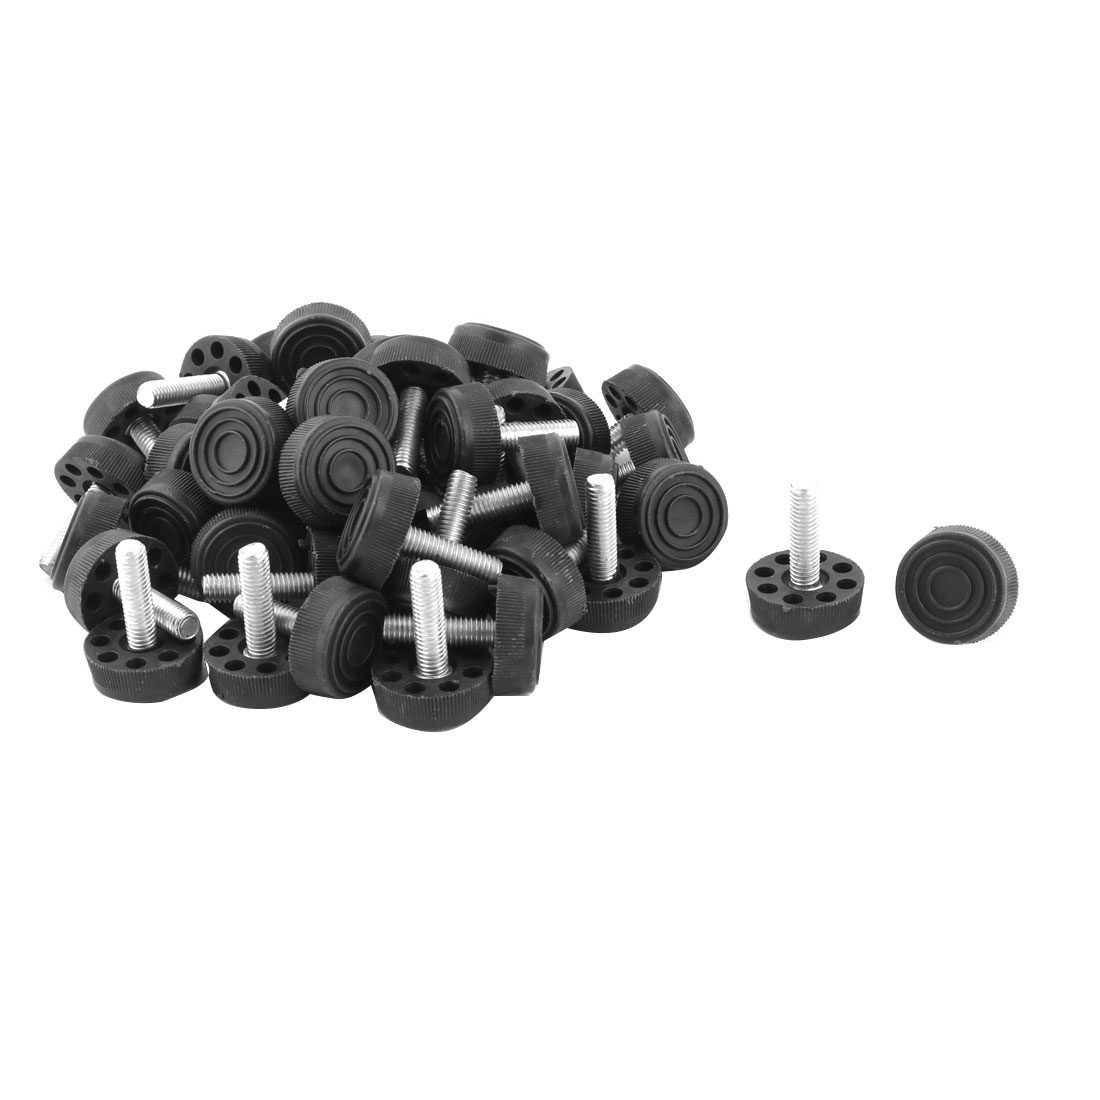 Home Adjustable Skid Resistant Furniture Leg Protector Leveling Foot Black 50pcs